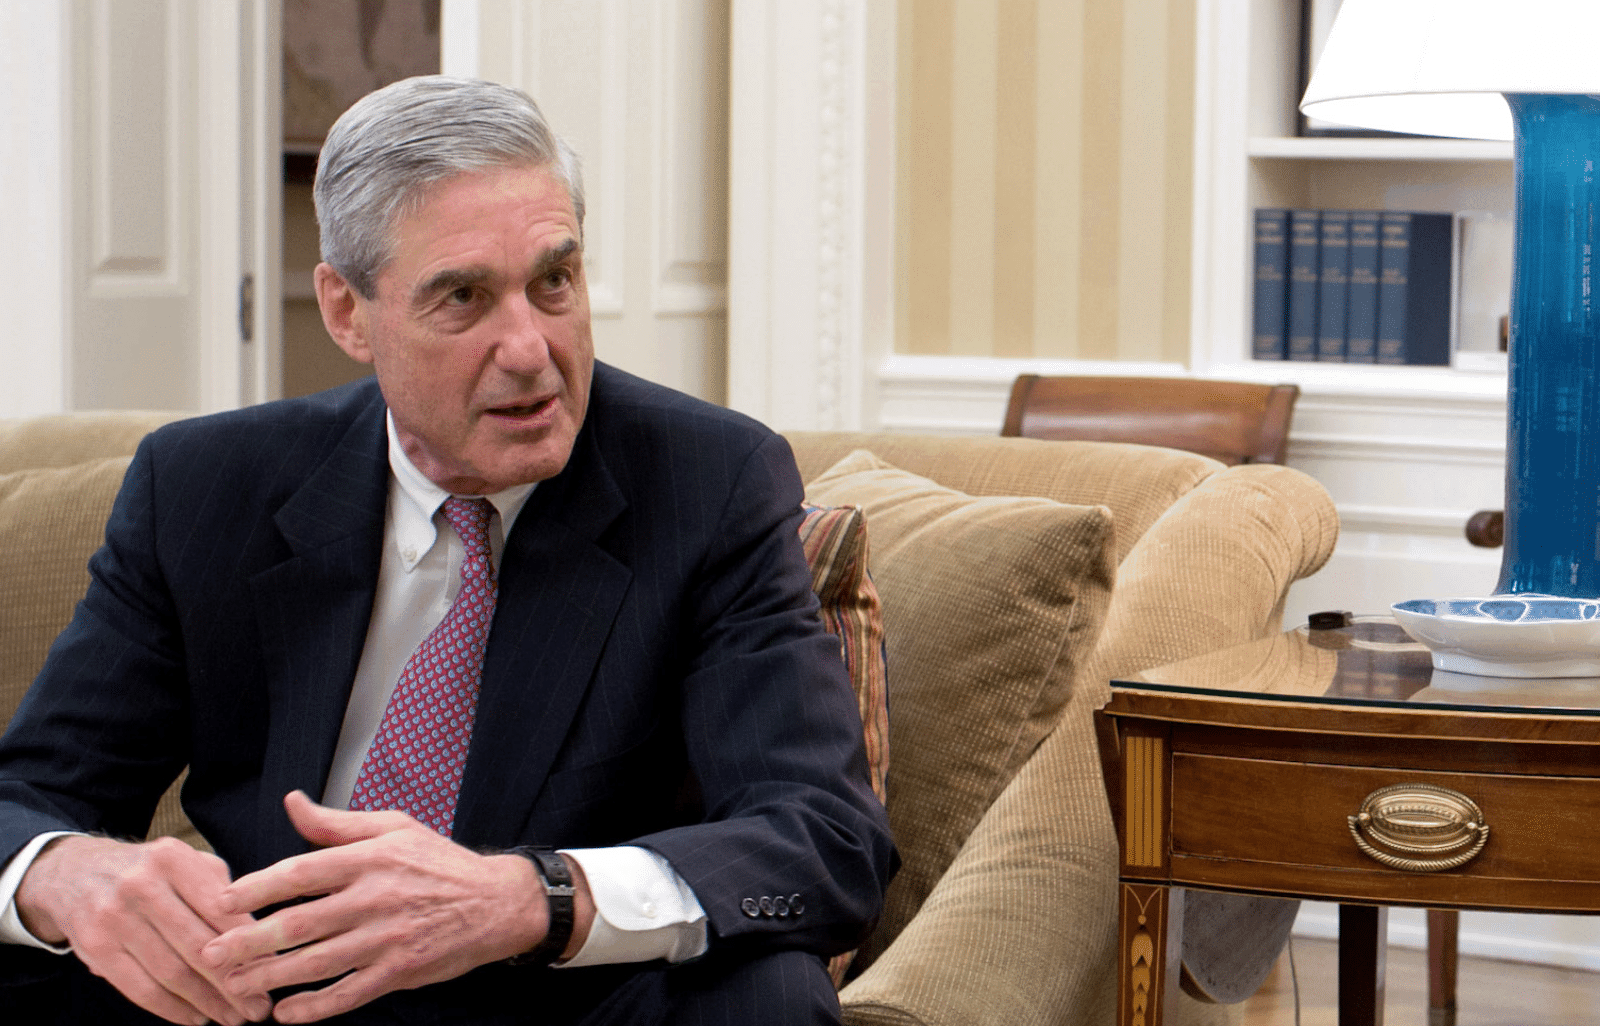 Judge Confirms Mueller's Appointment is Constitutional in Win for Special Counsel